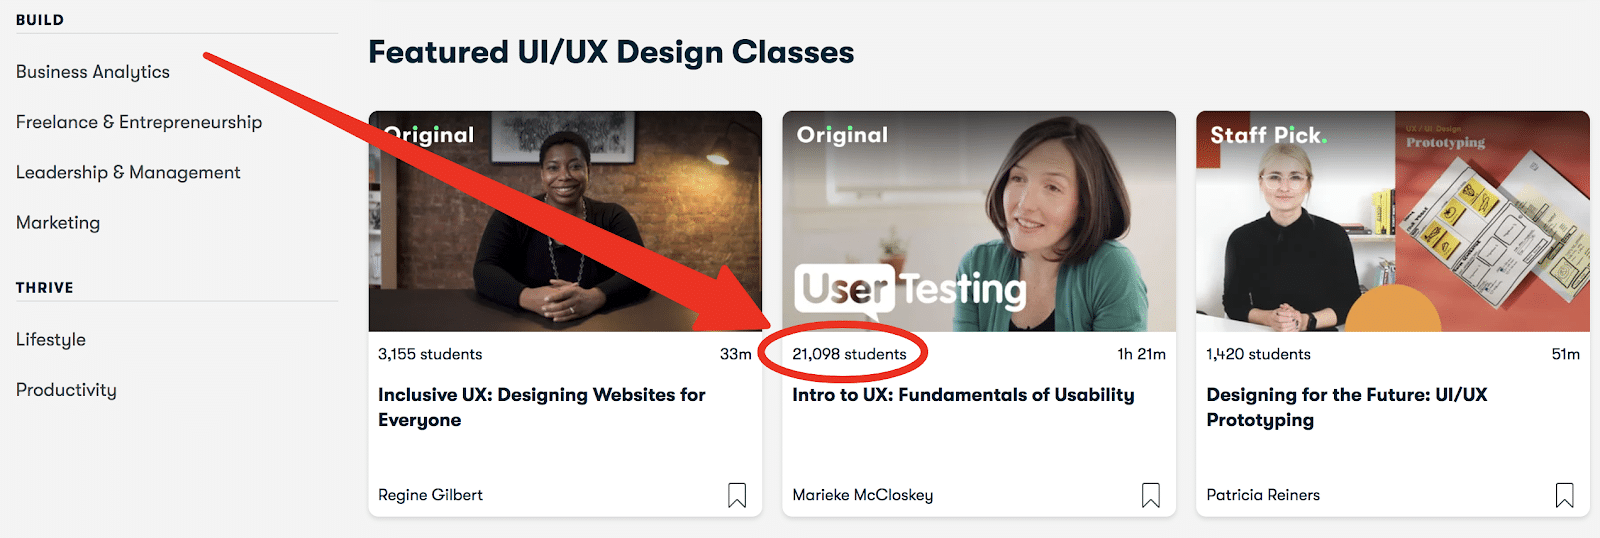 a UI/UX course on udemy displaying 21,098 students have enrolled